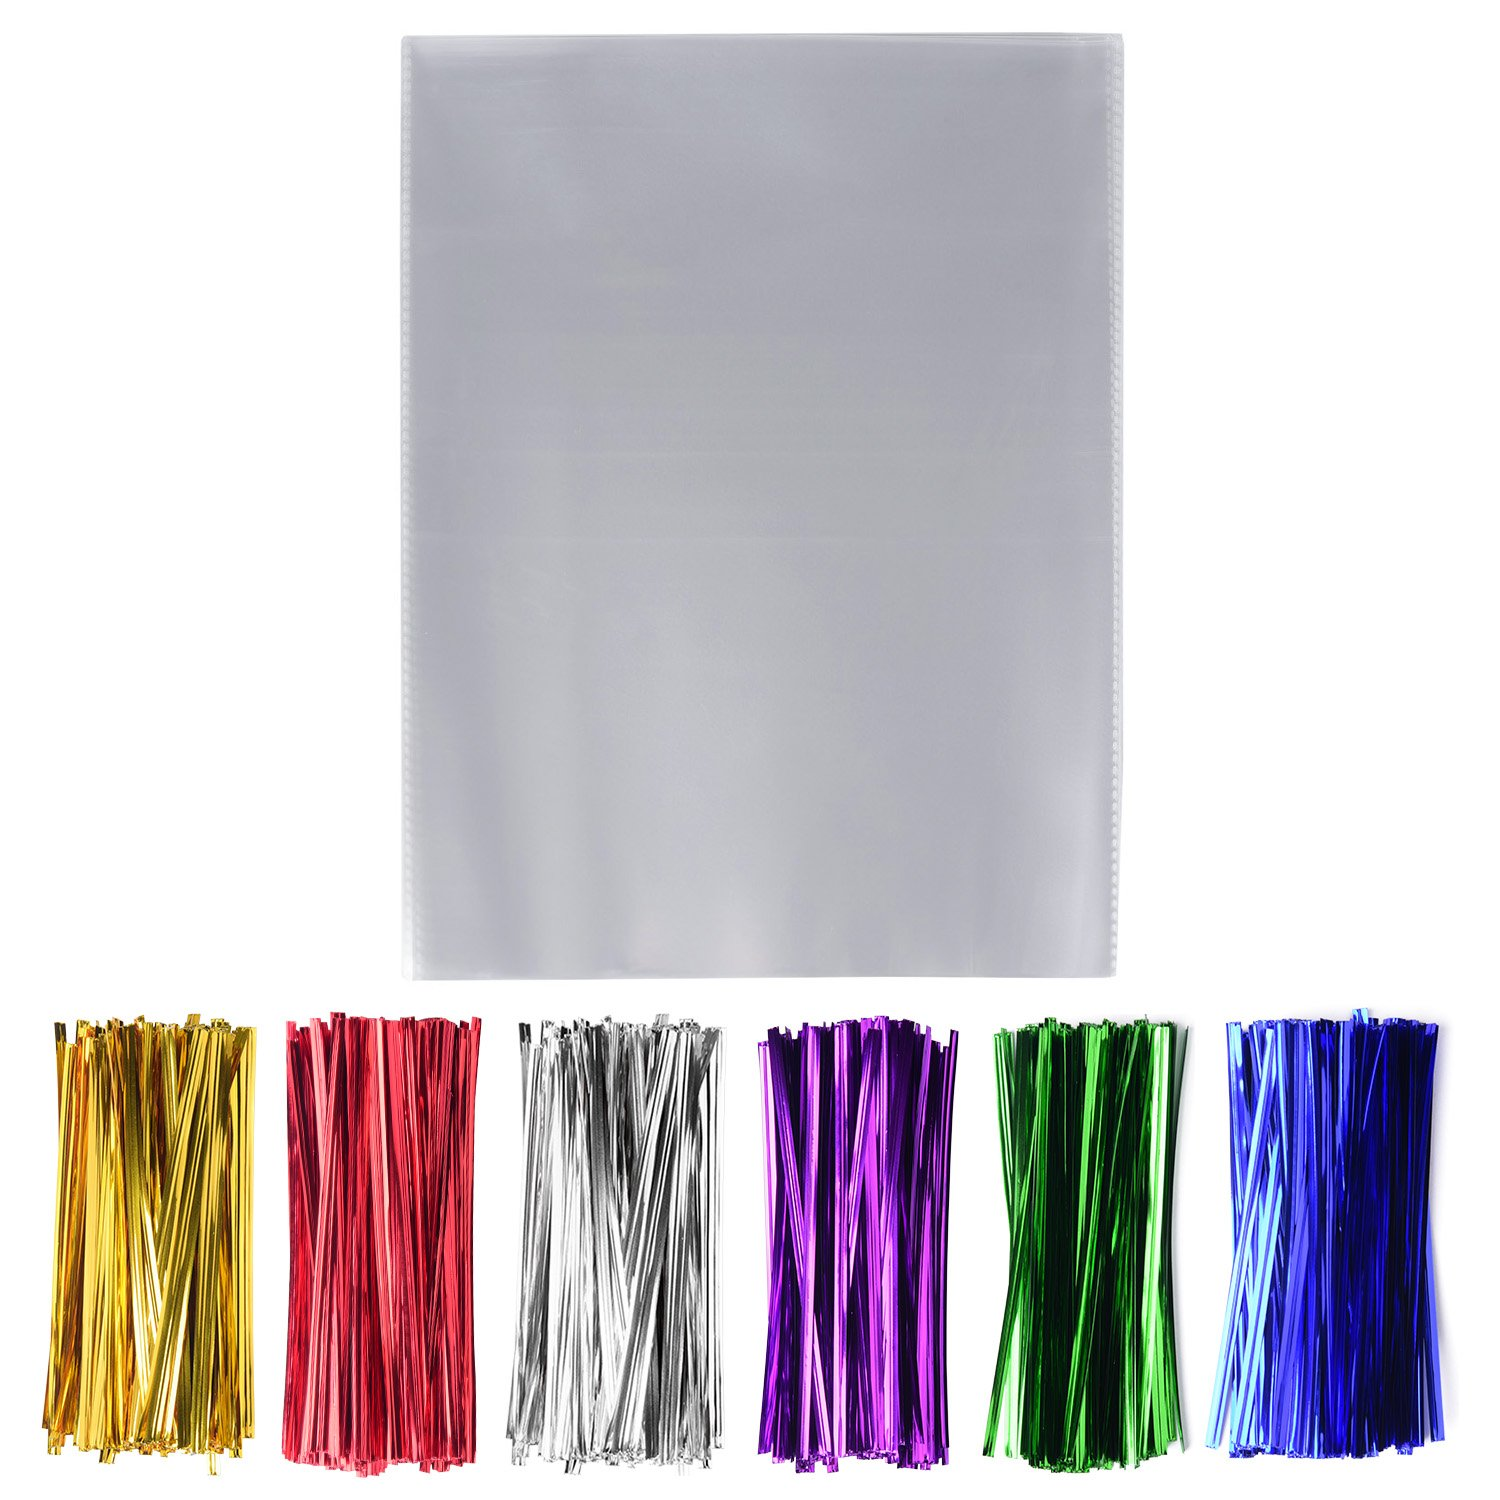 200 Pcs Clear Cello Cellophane Treat Bags - 1.4mil thickness OPP Plastic Bags with 6 Mix Colors Twist Ties Perfect for Wedding Party Cookie Candy Buffet Supply (8'' x 10'')